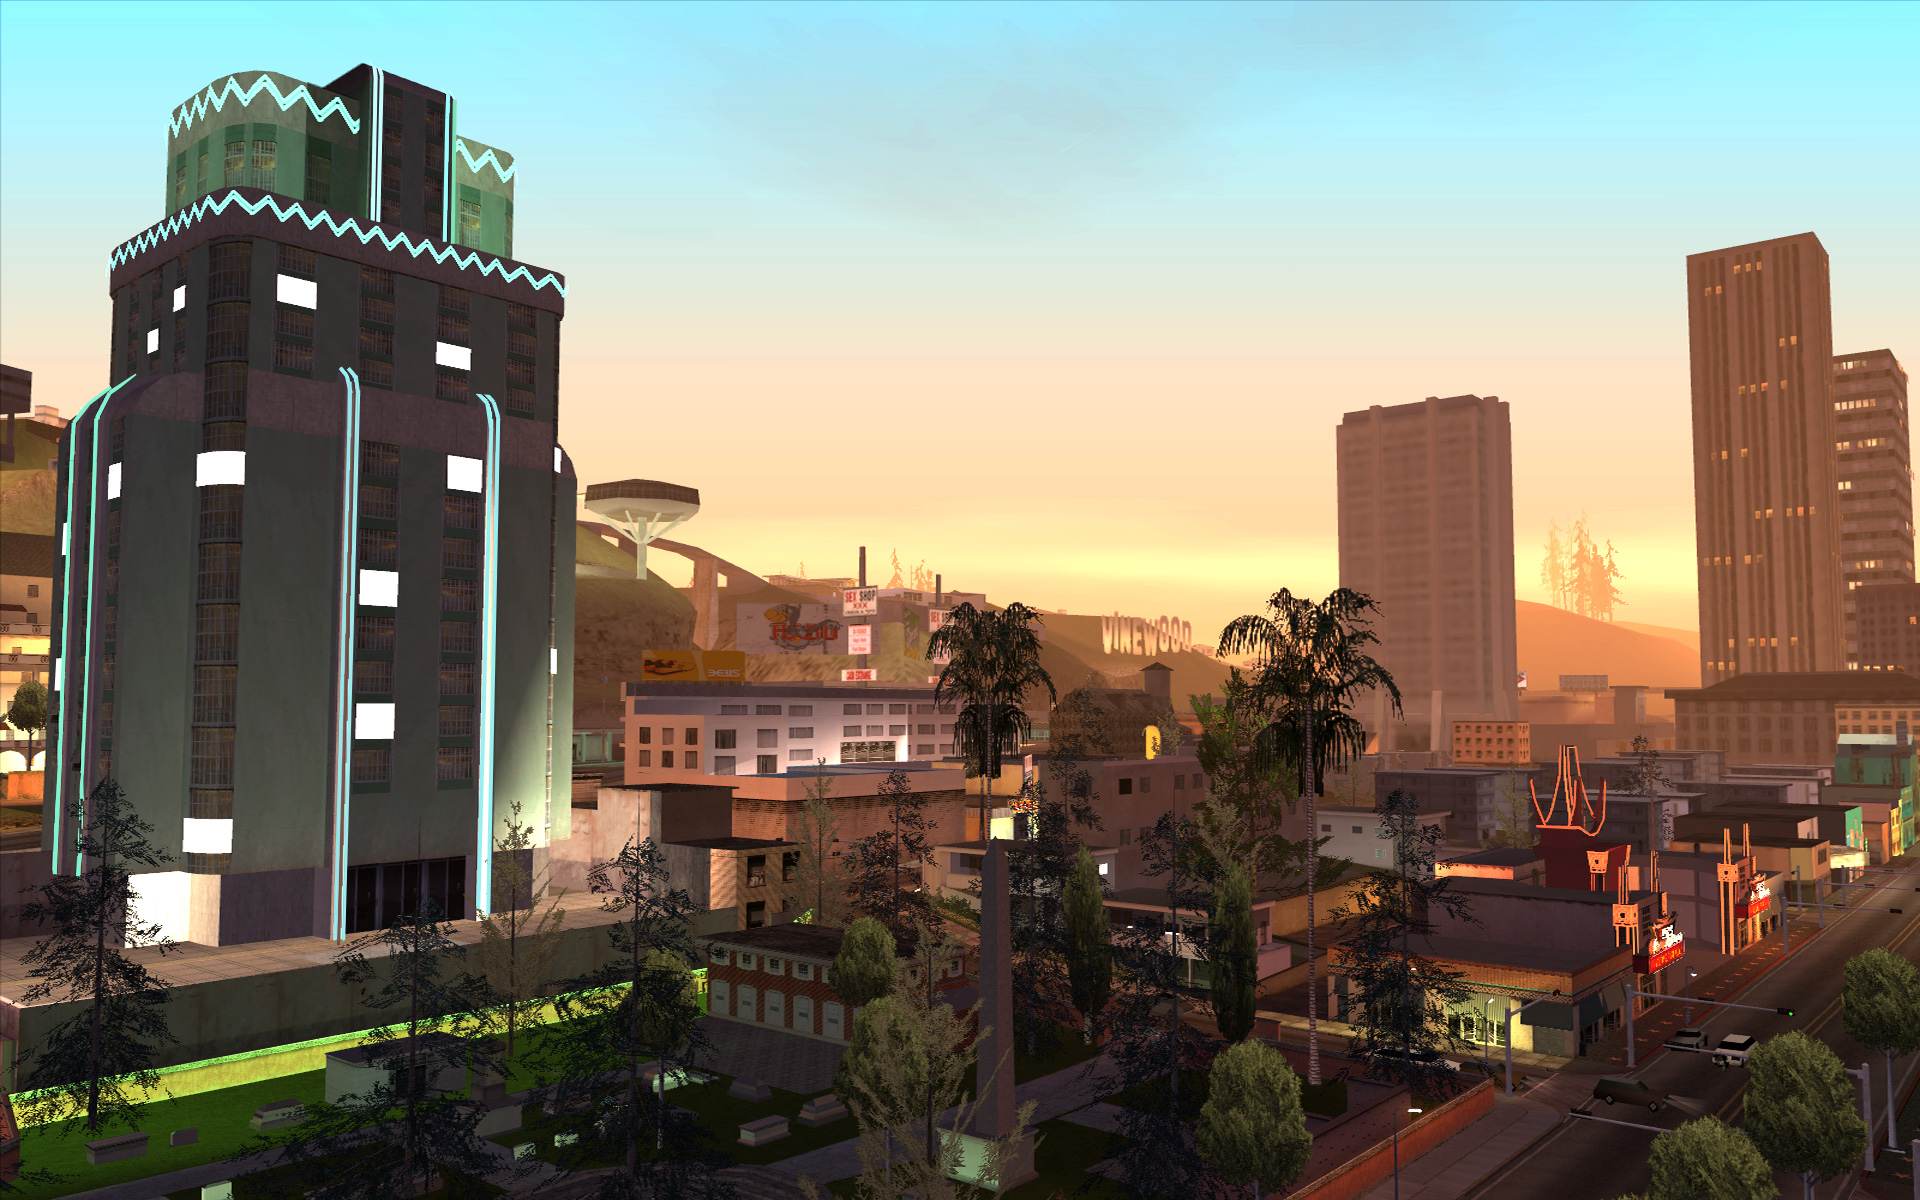 Salve zerado do gta san andreas. Cidade do game GTA San Andreas. City GTA San Andreas